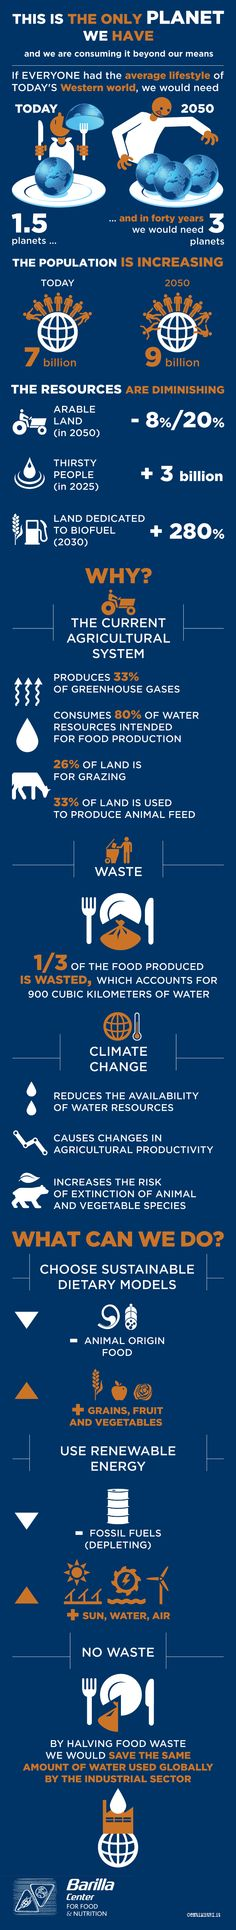 .Barilla is doing some great work (and making a significant investment) in reducing food waste. Visit the Barilla/World Environment Day website to learn more.